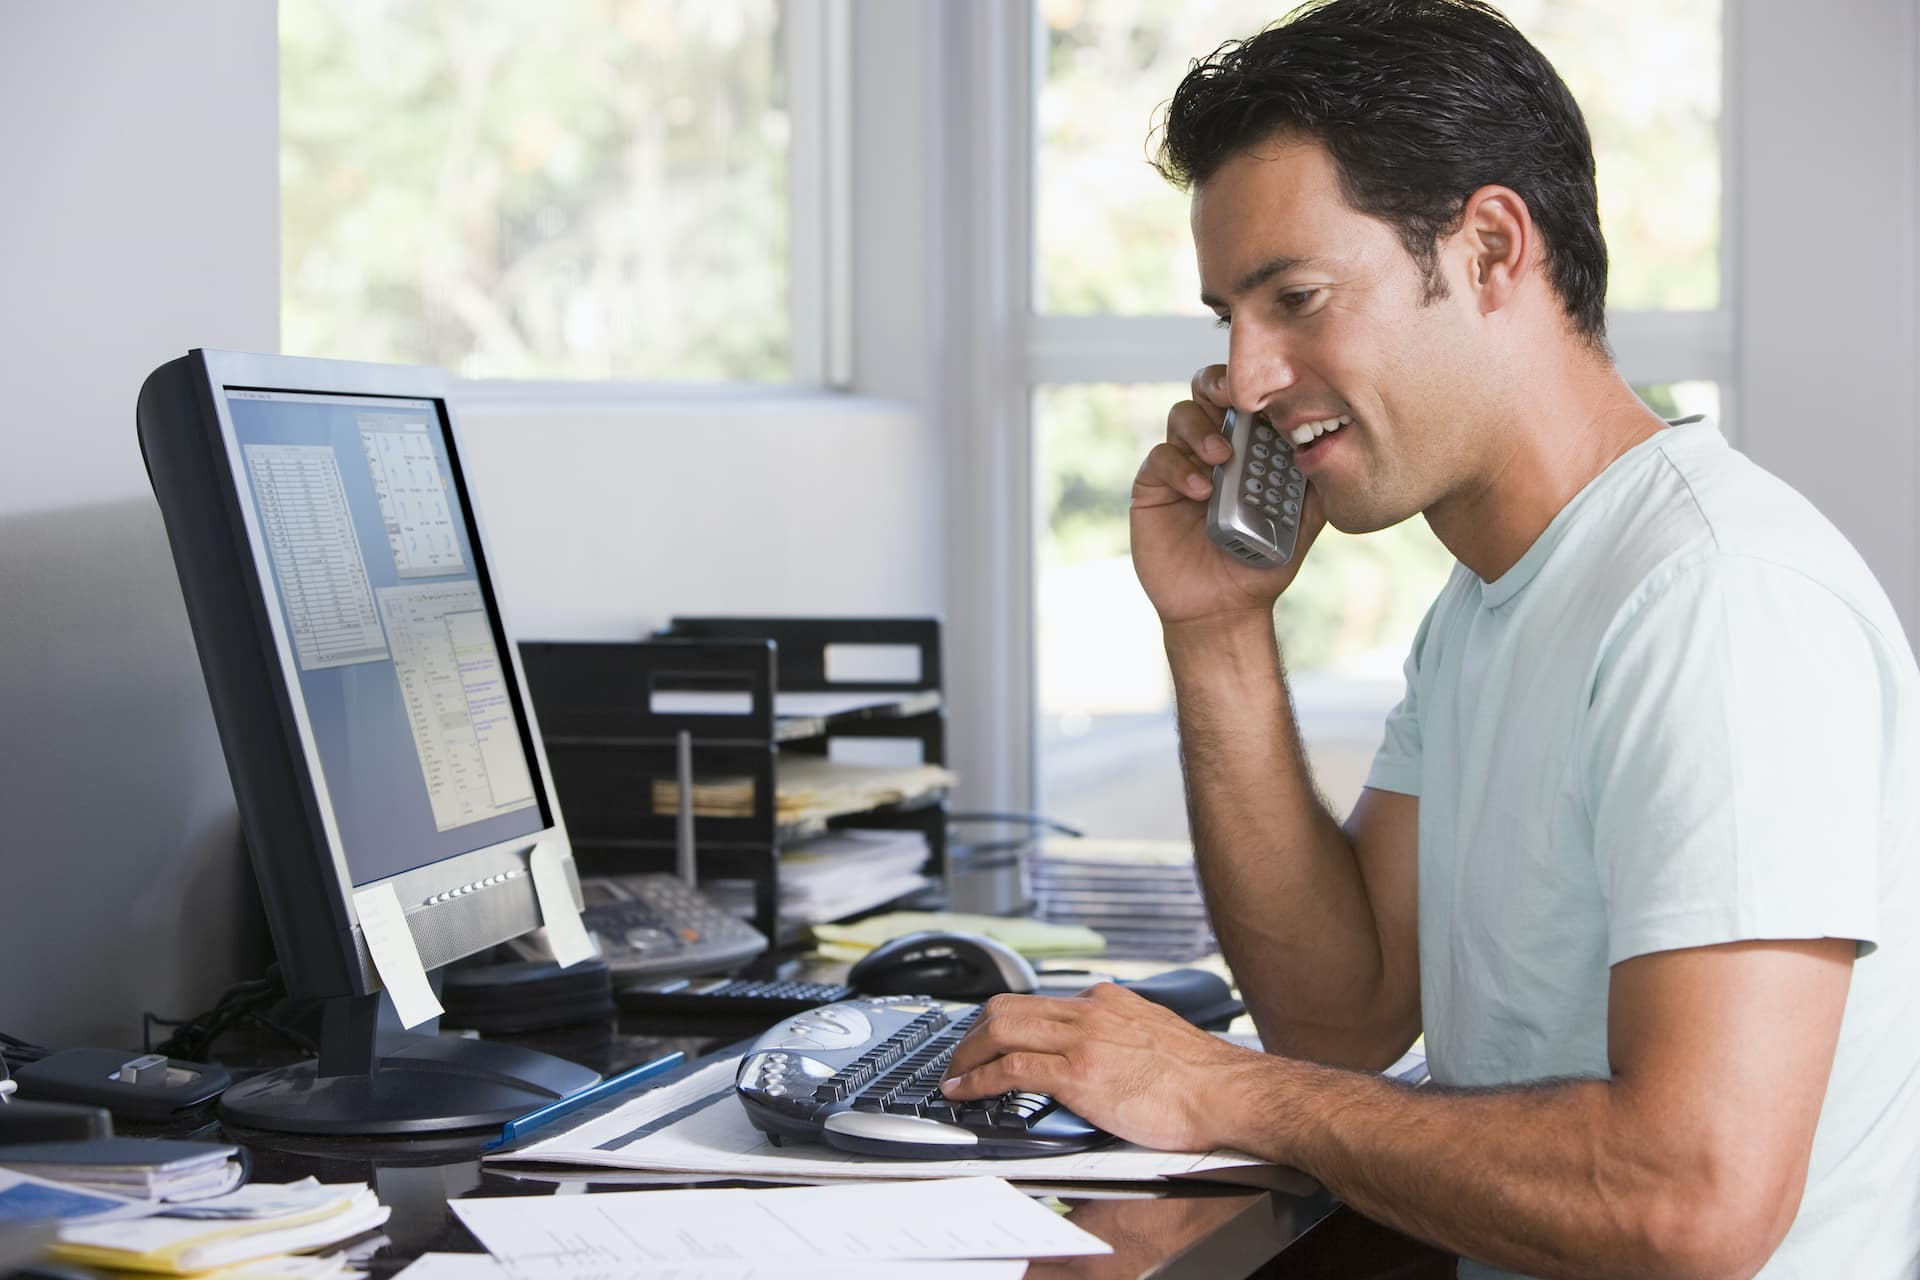 Man on the Phone in Home Office